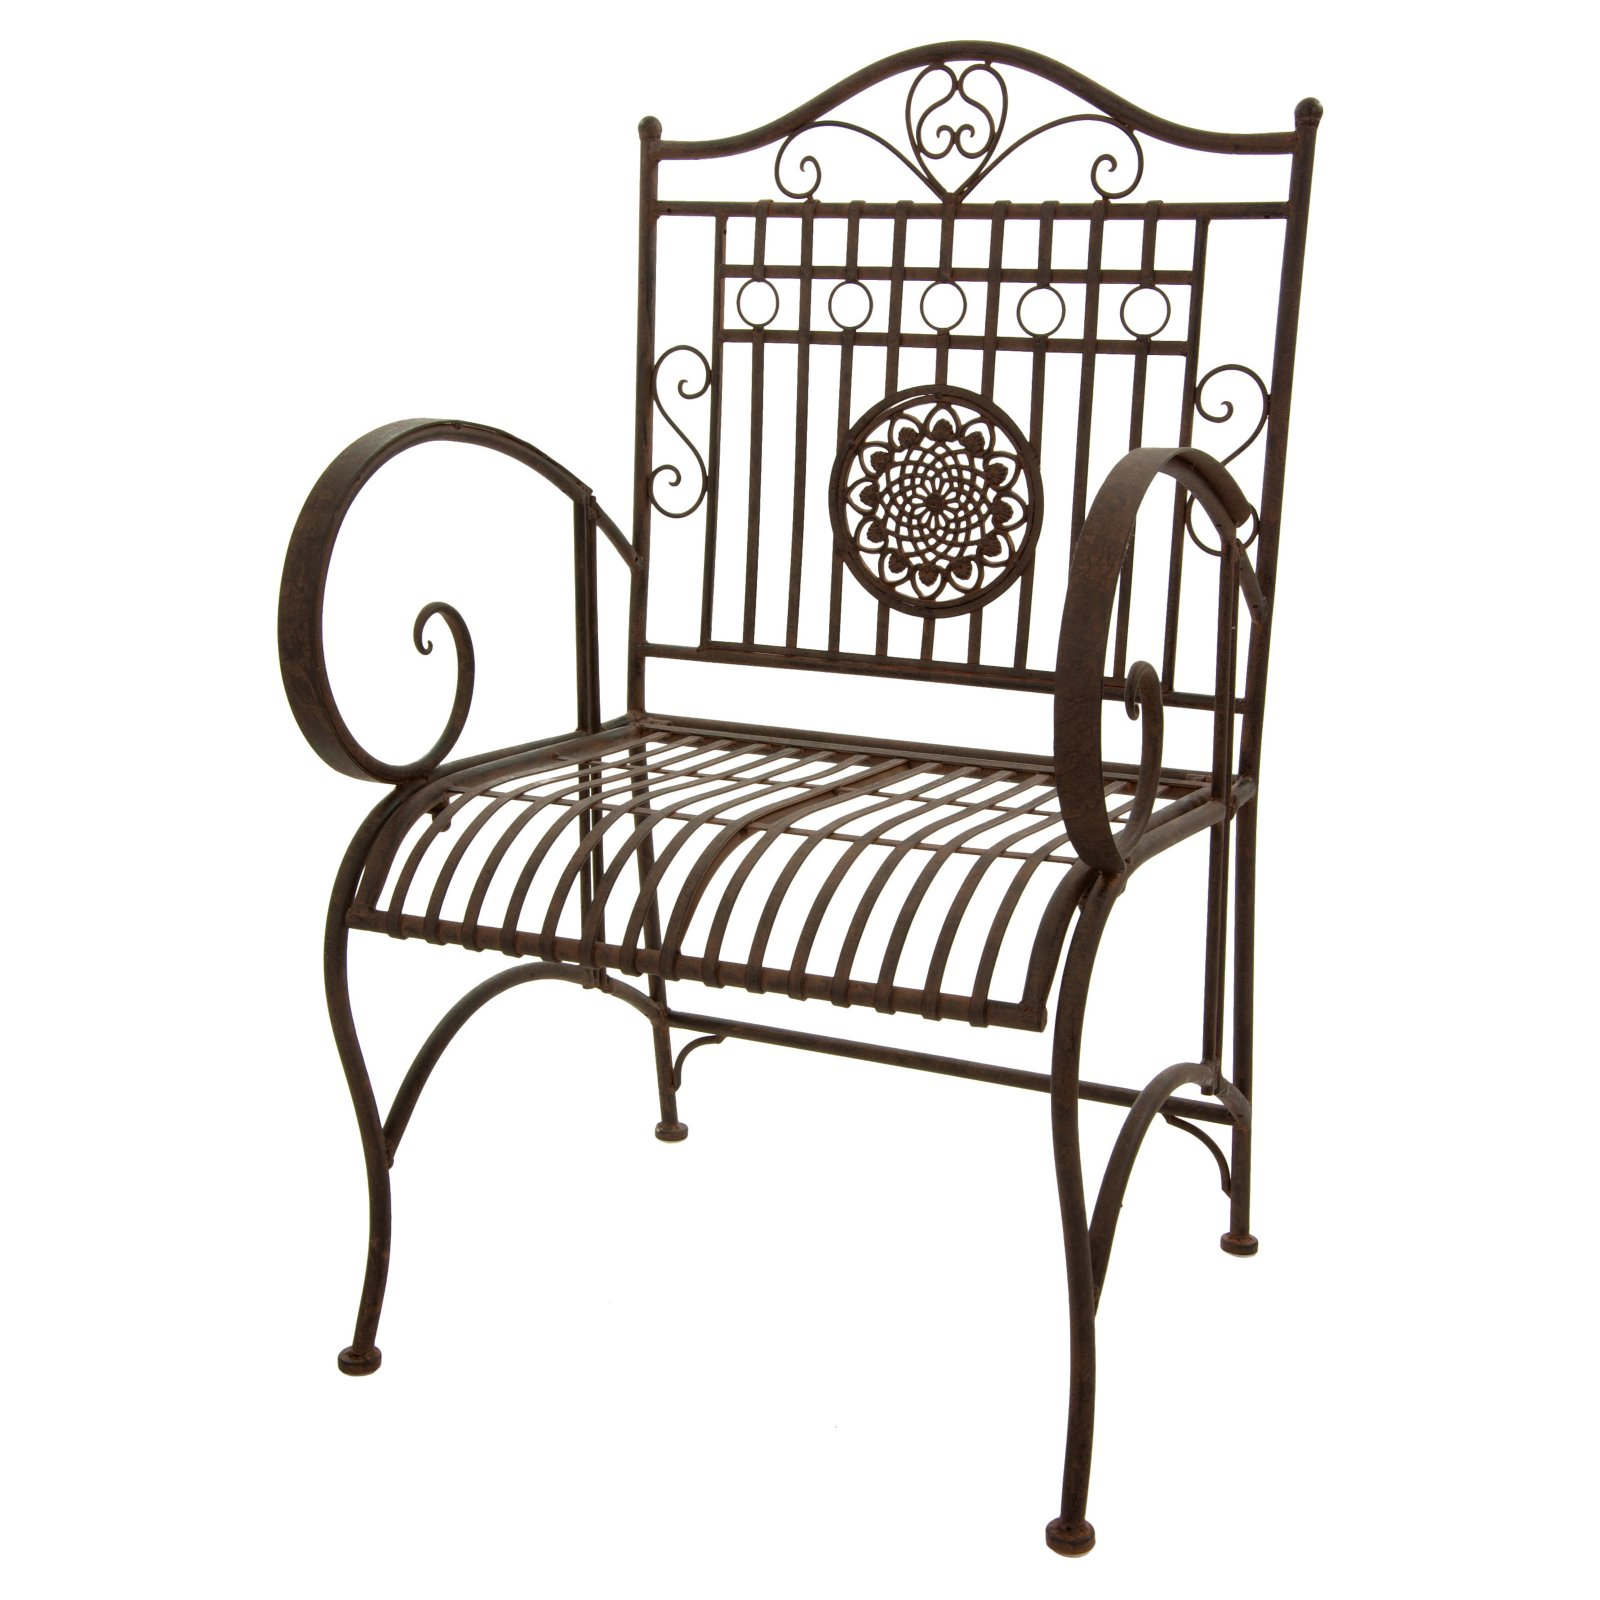 Oriental Furniture Rustic Wrought Iron Patio Arm Chair